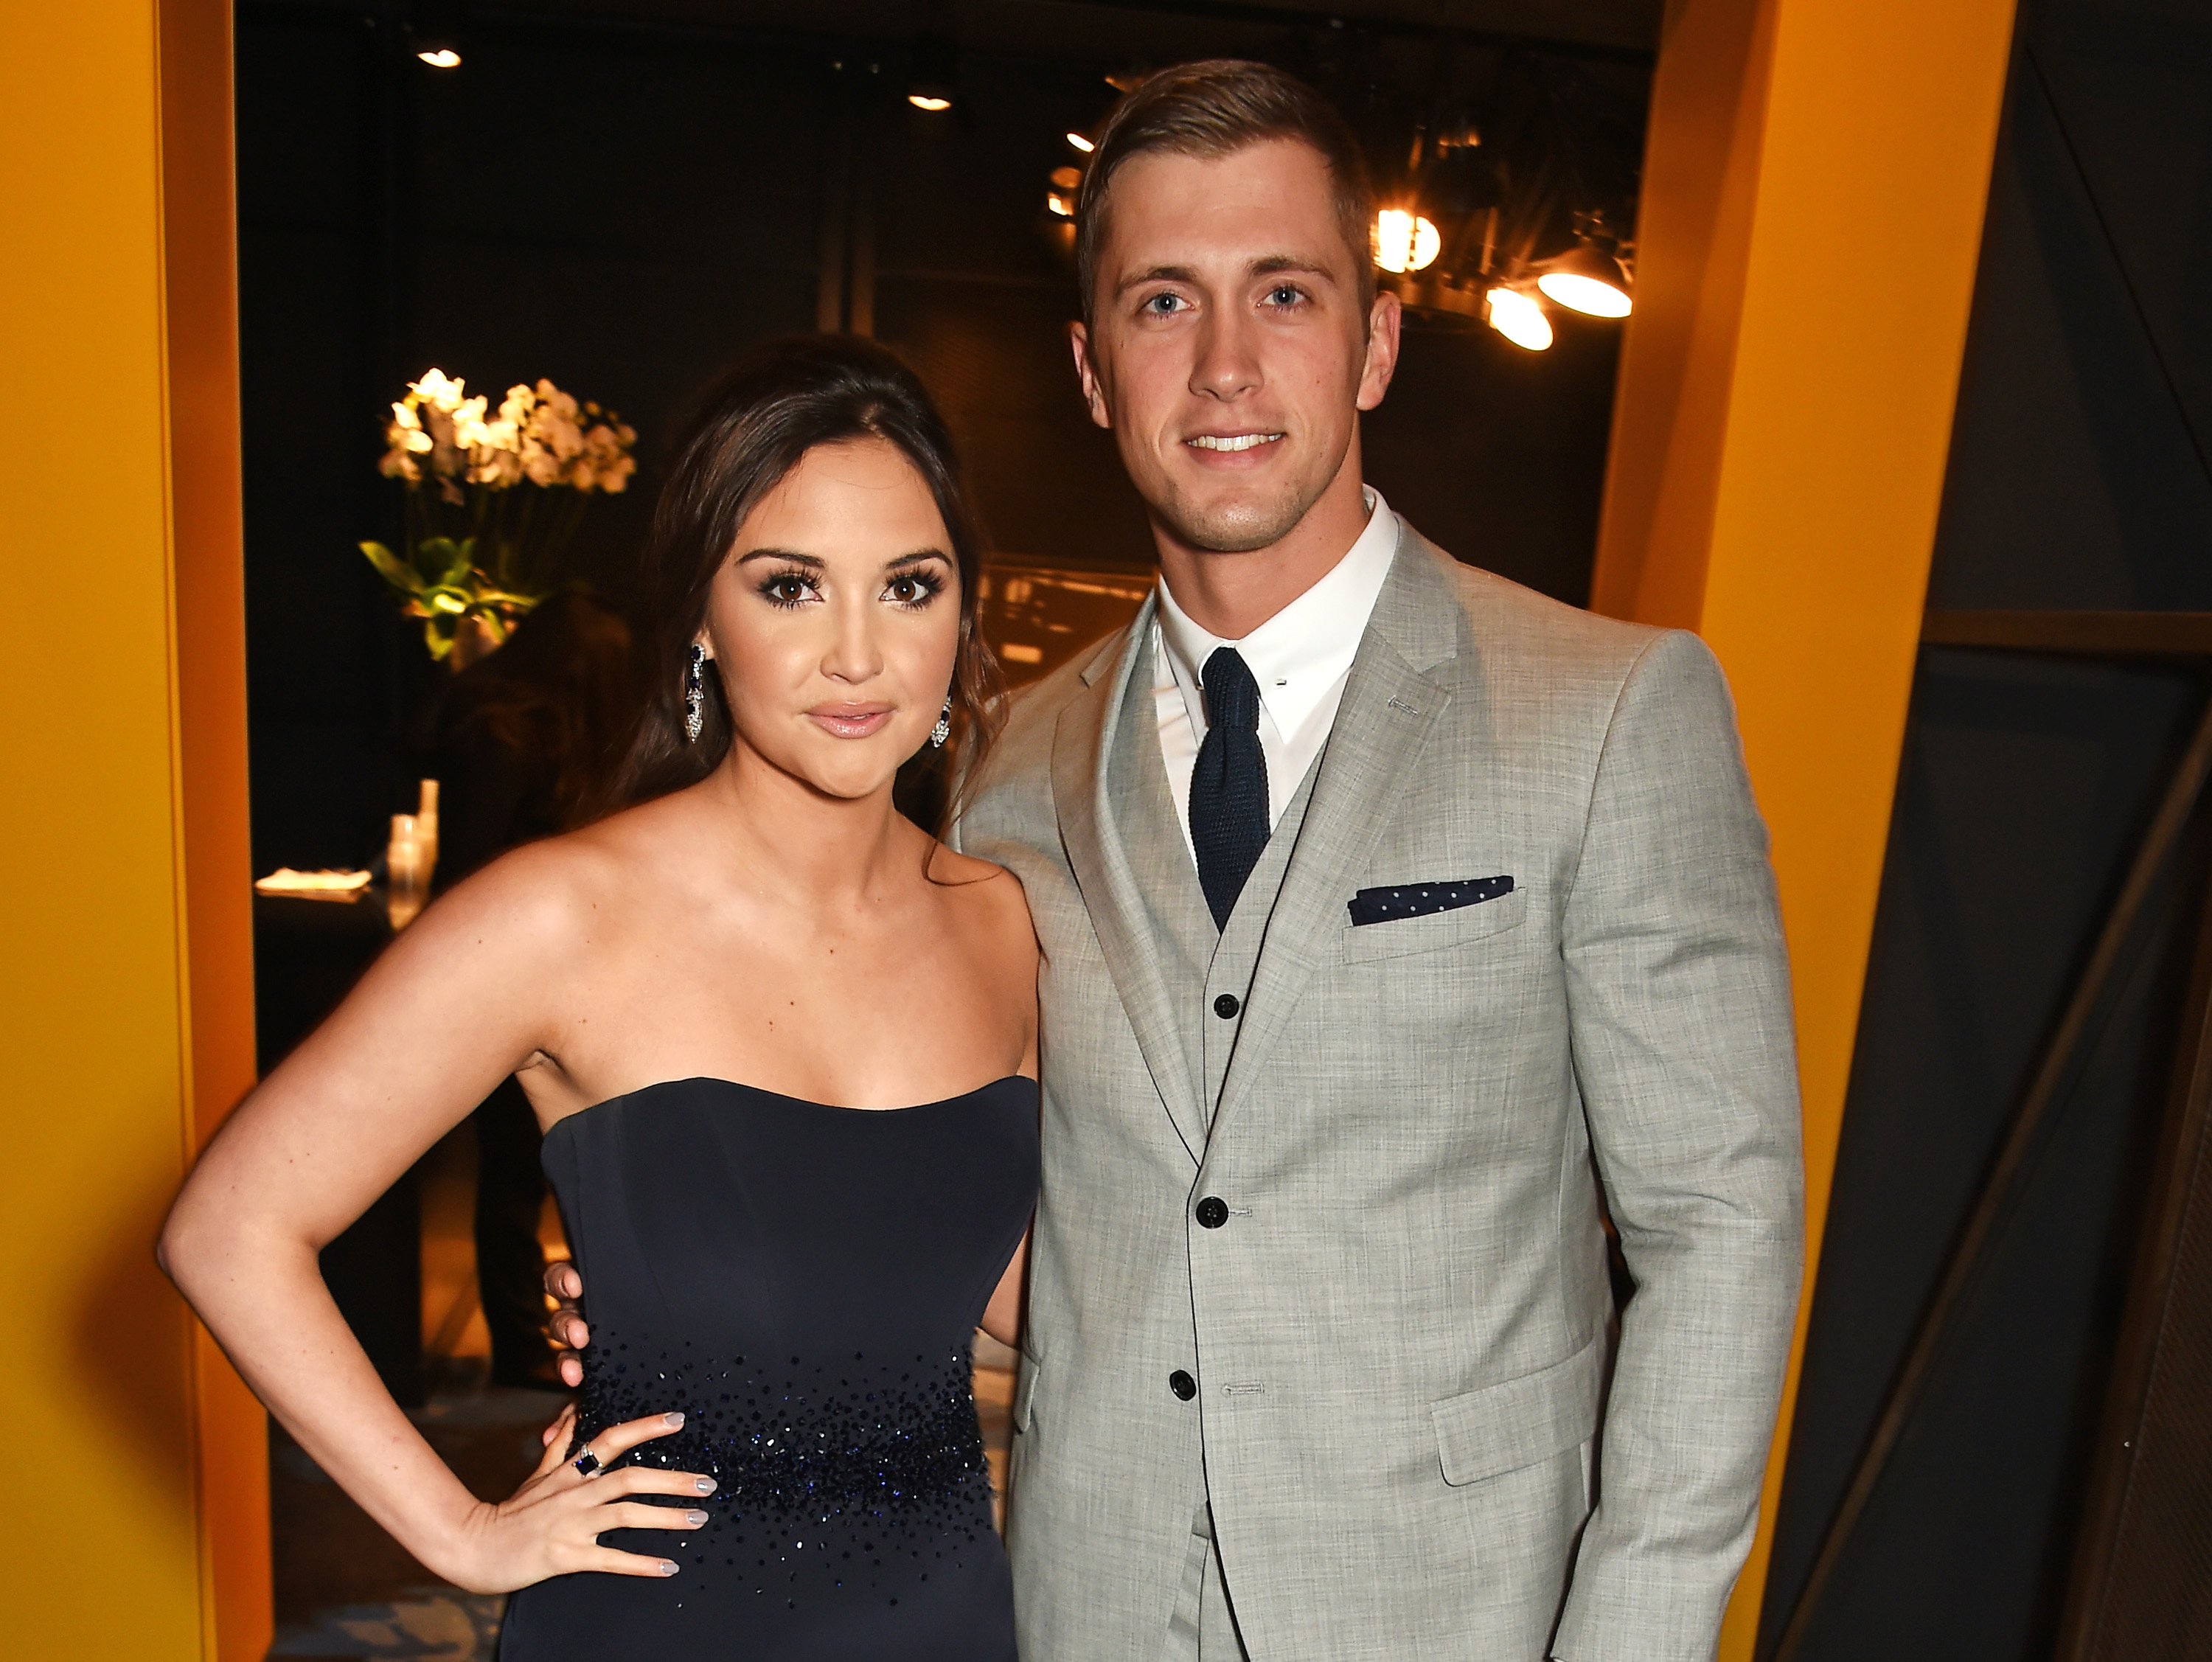 Jacqueline Jossa confirms she and Dan Osborne are still together after he said they are 'losing their friendship'